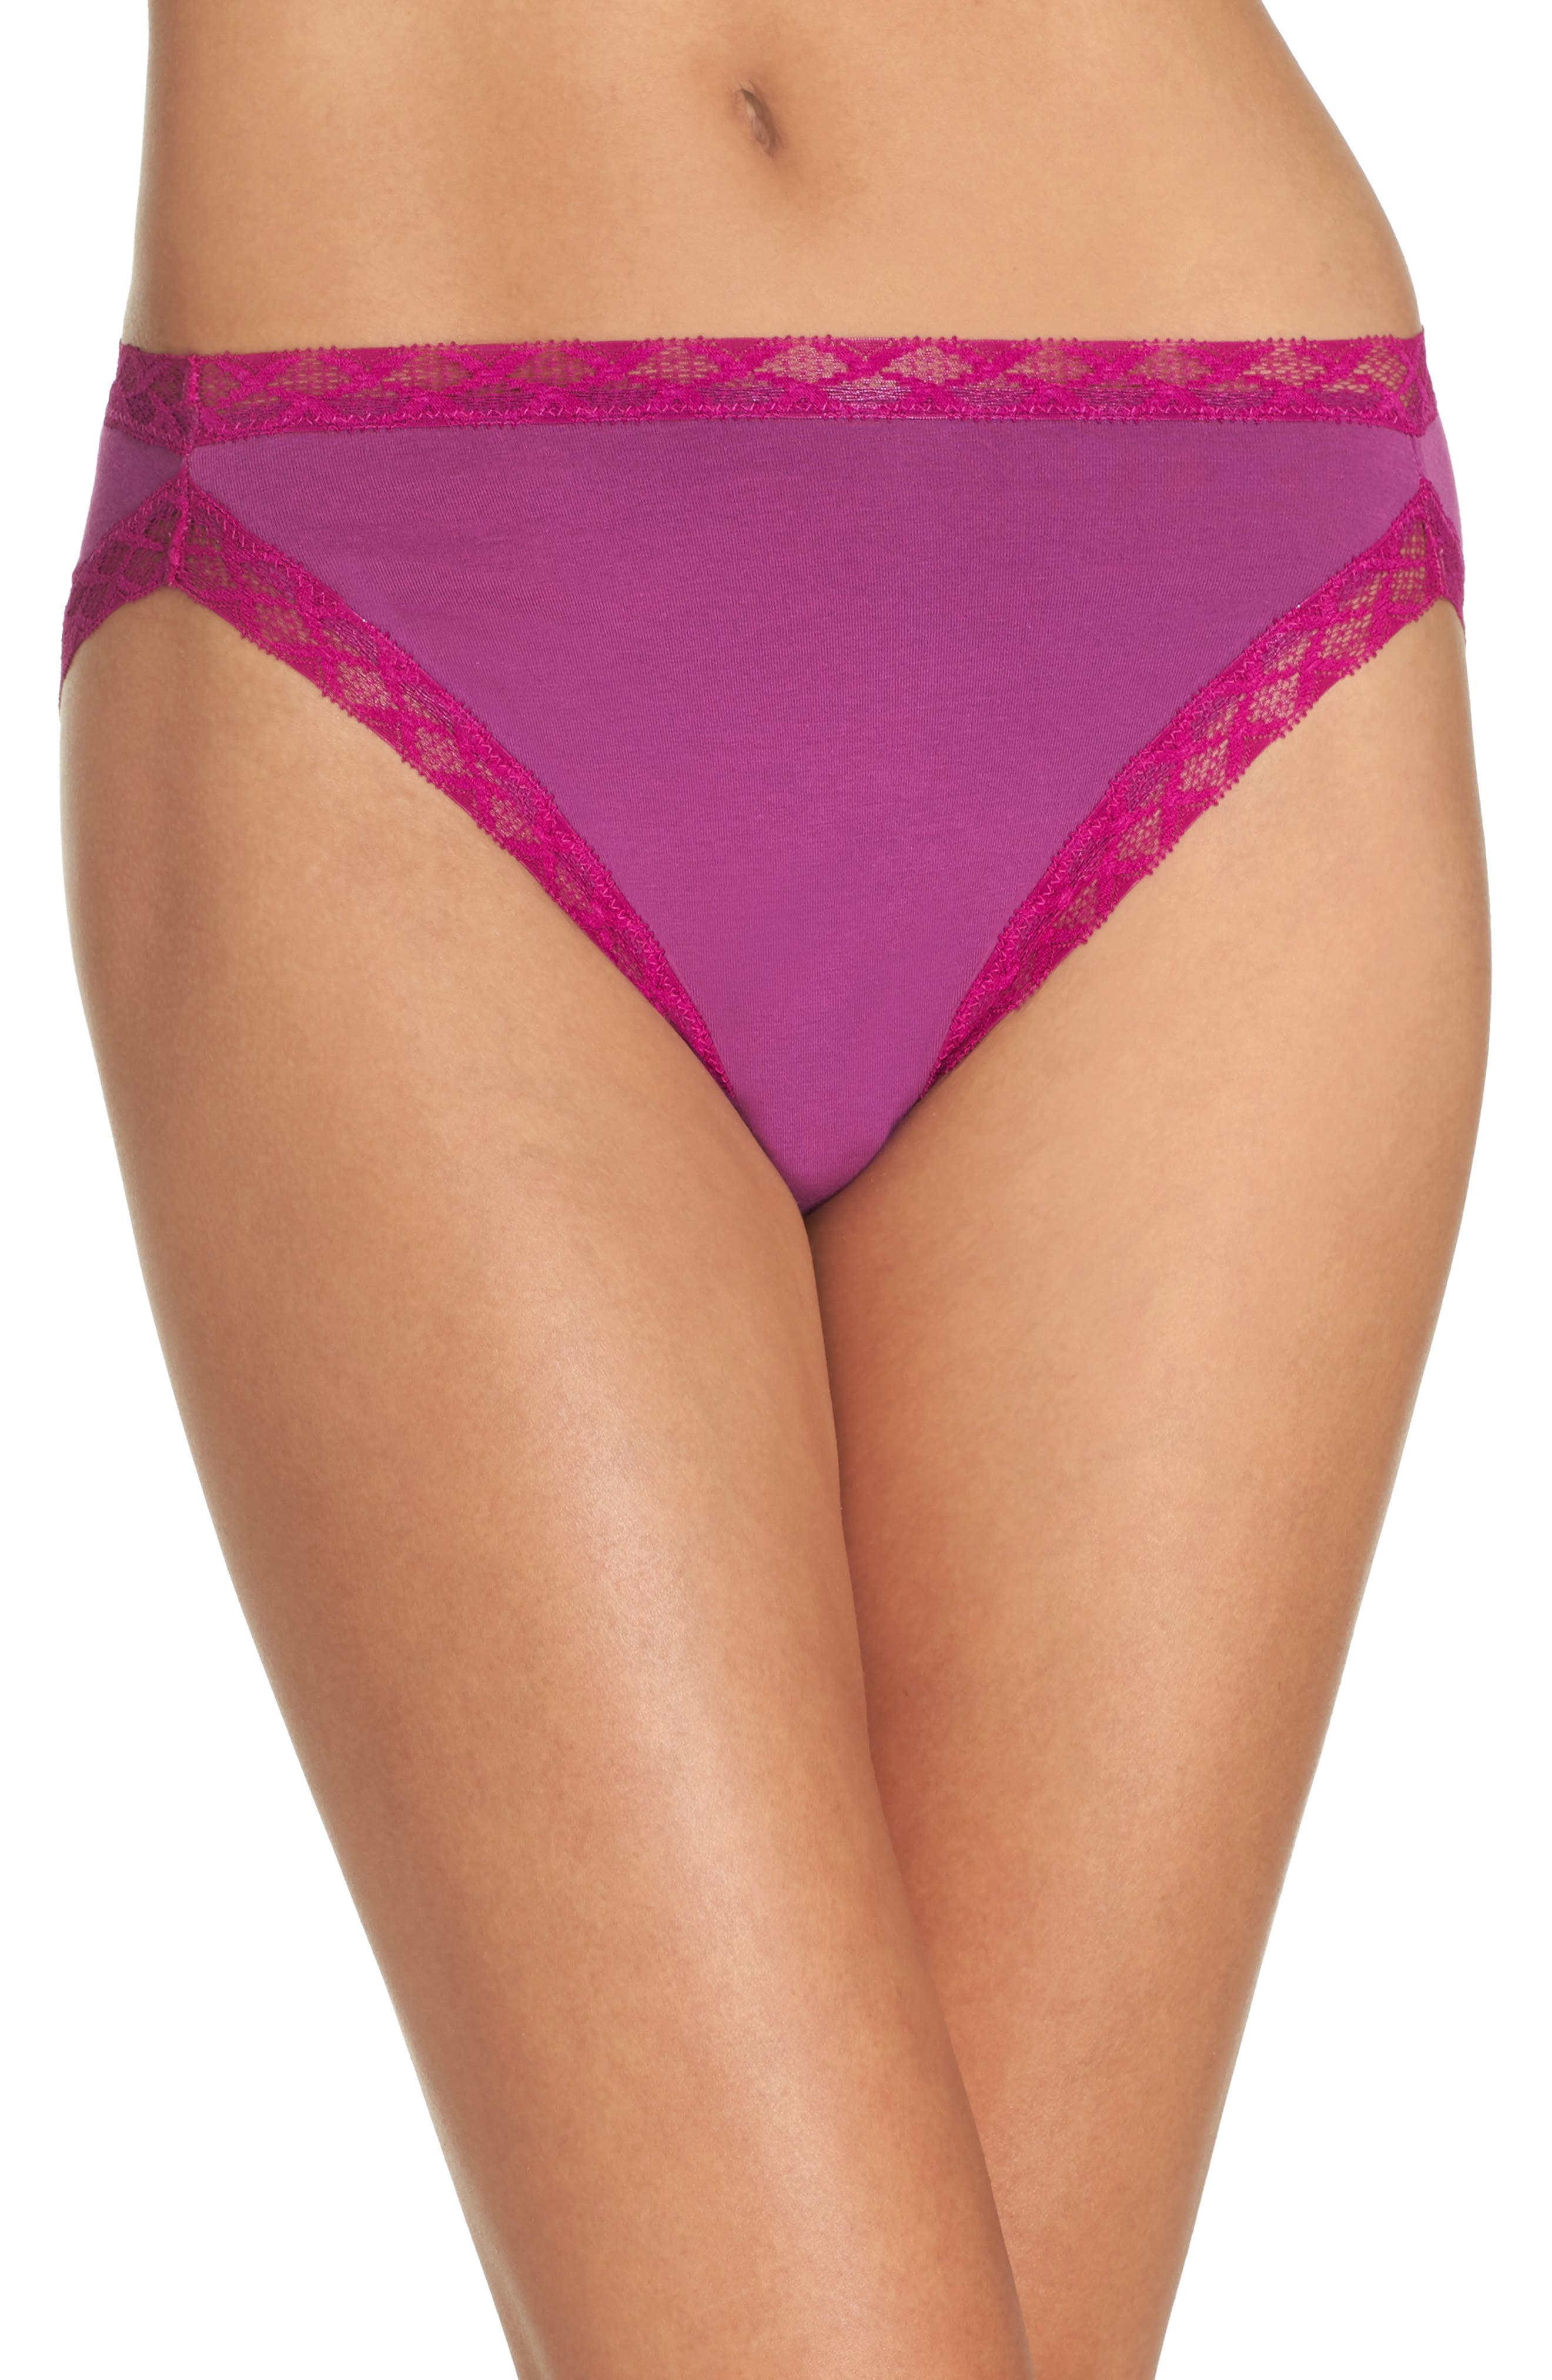 Bliss French Cut Briefs,                         Main,                         color, Boysenberry